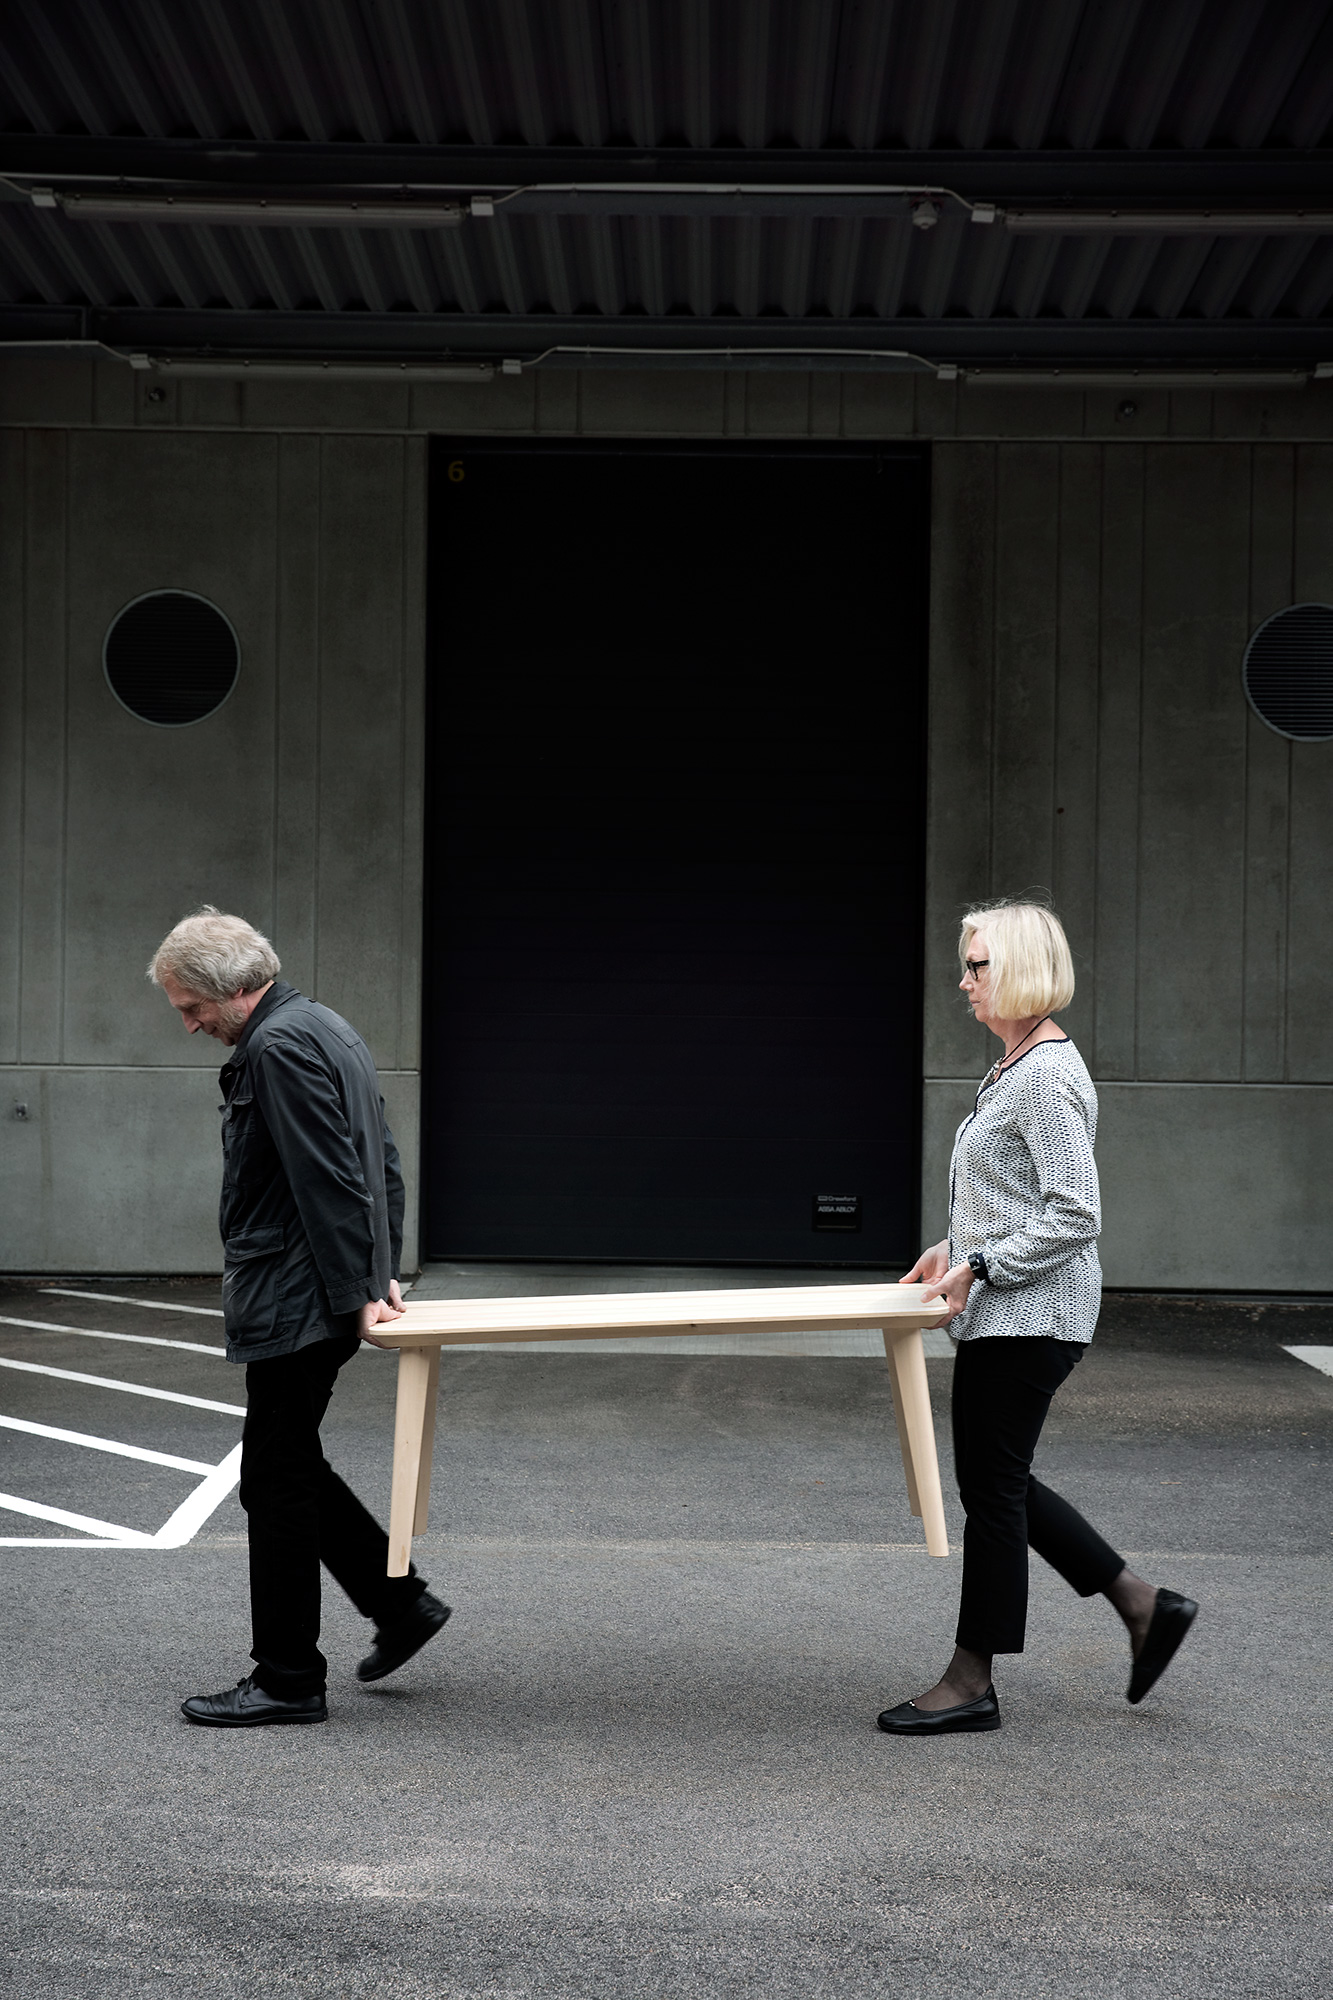 A man and a woman walking past a concrete facade, carrying a light wooden table between them.